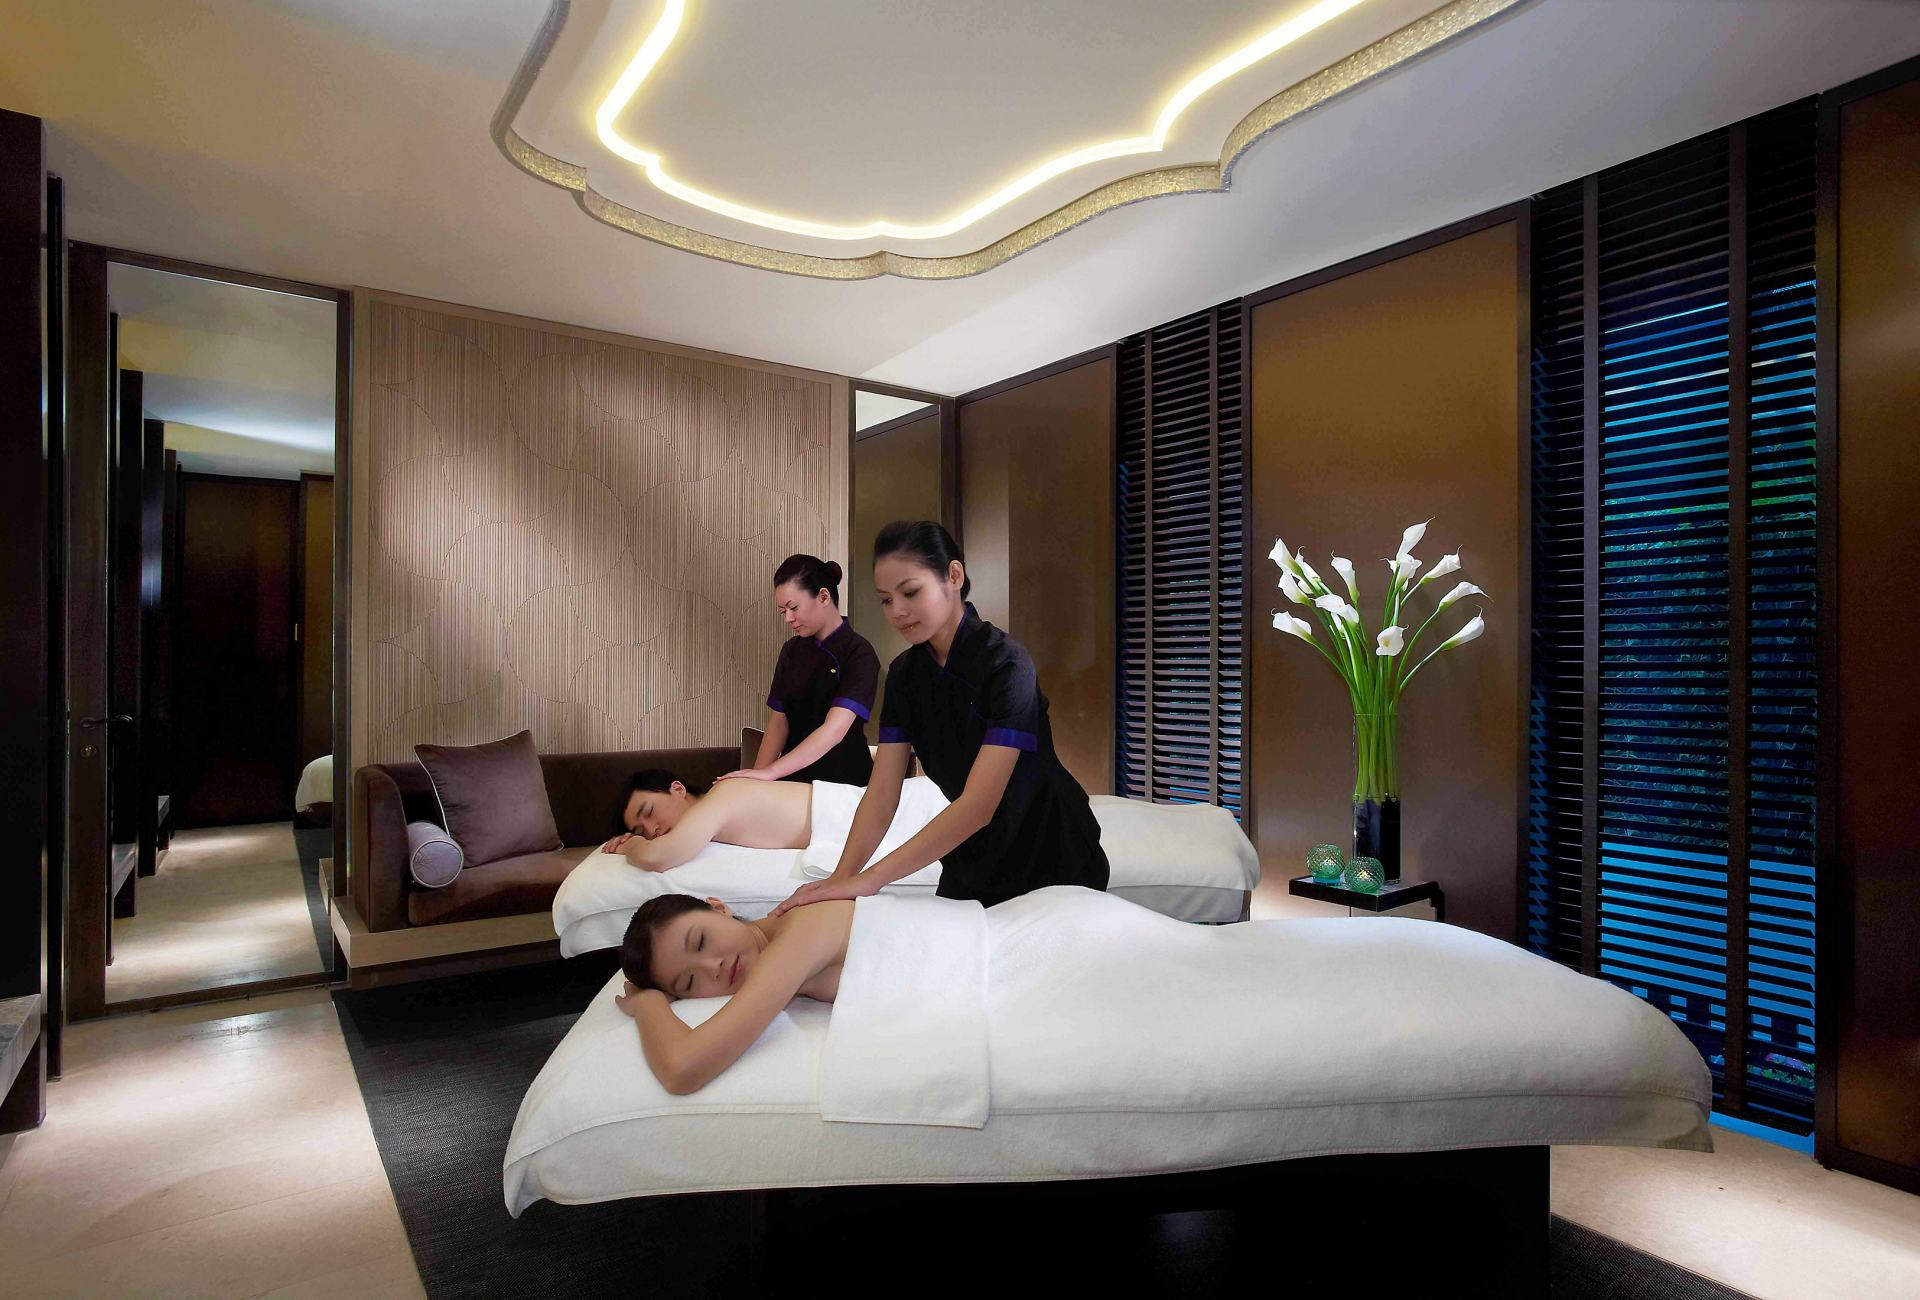 singapore-spa-couple-suite-treatment-1.jpg